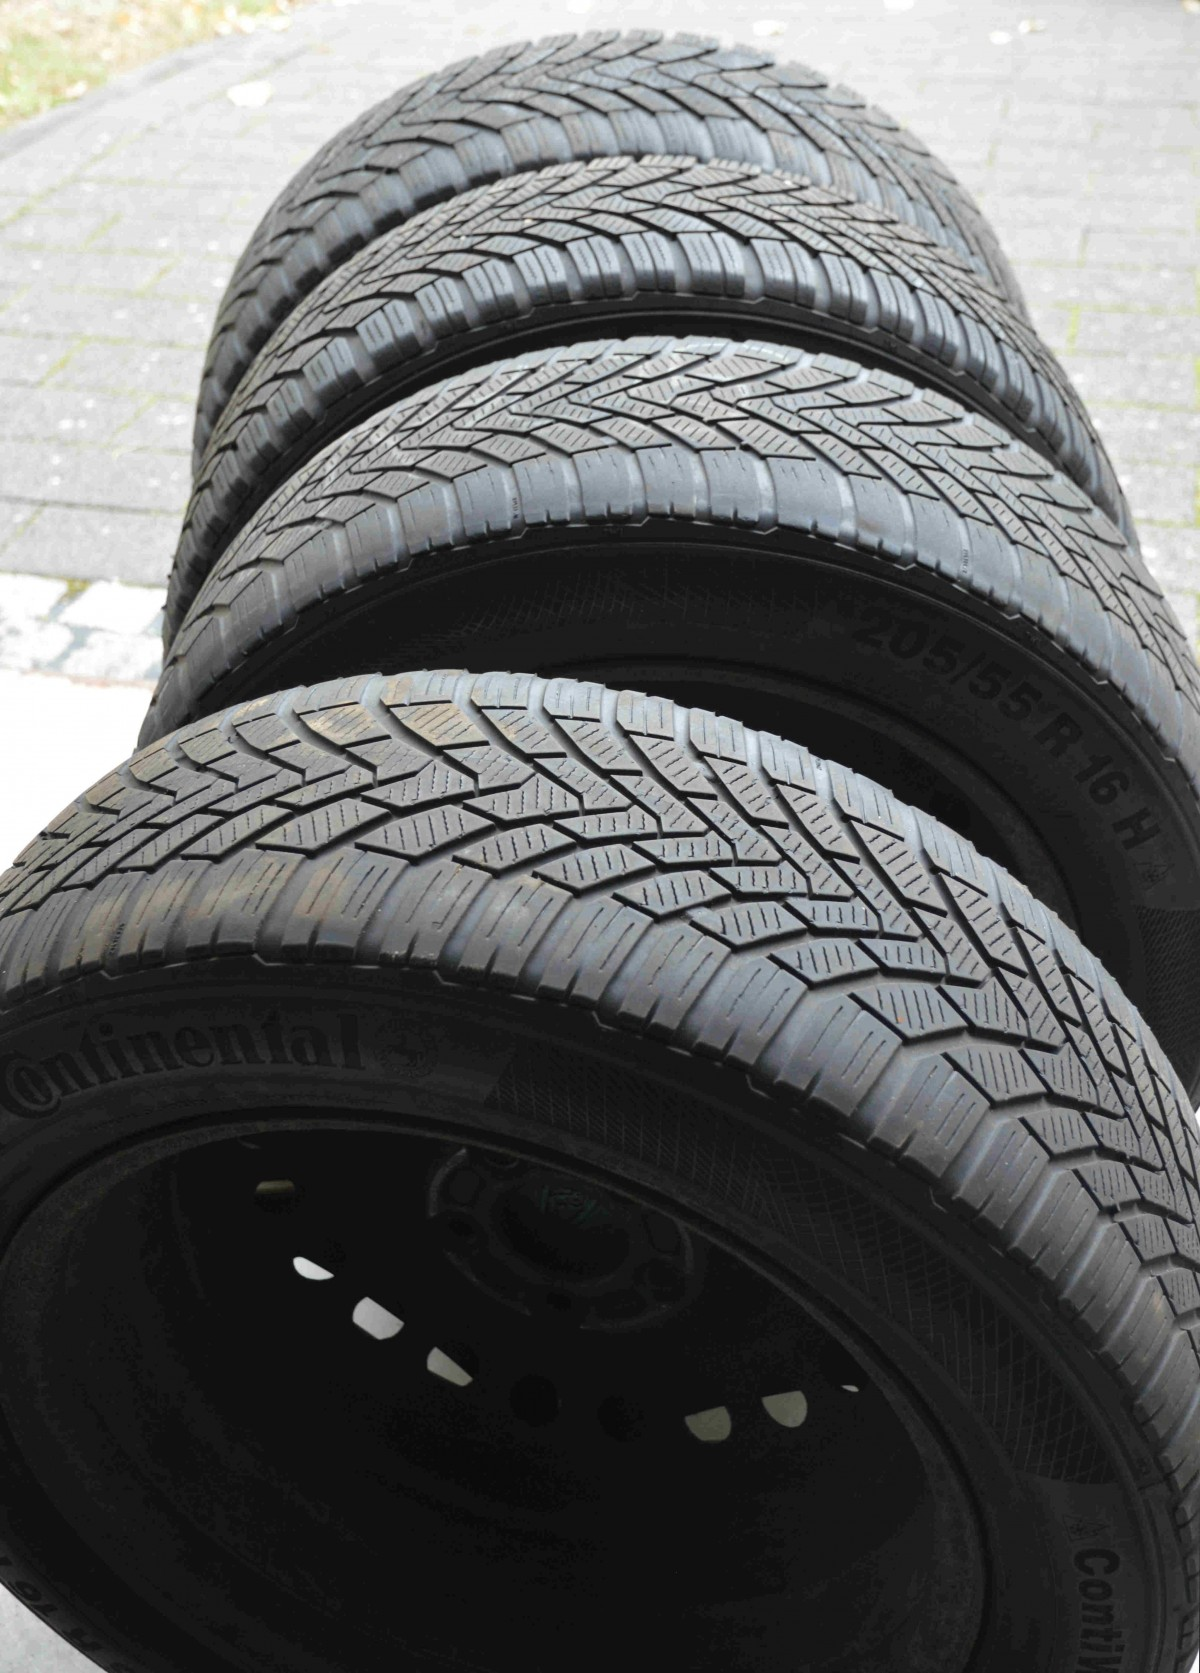 How to choose tyres: Selecting the right rubber for your drive